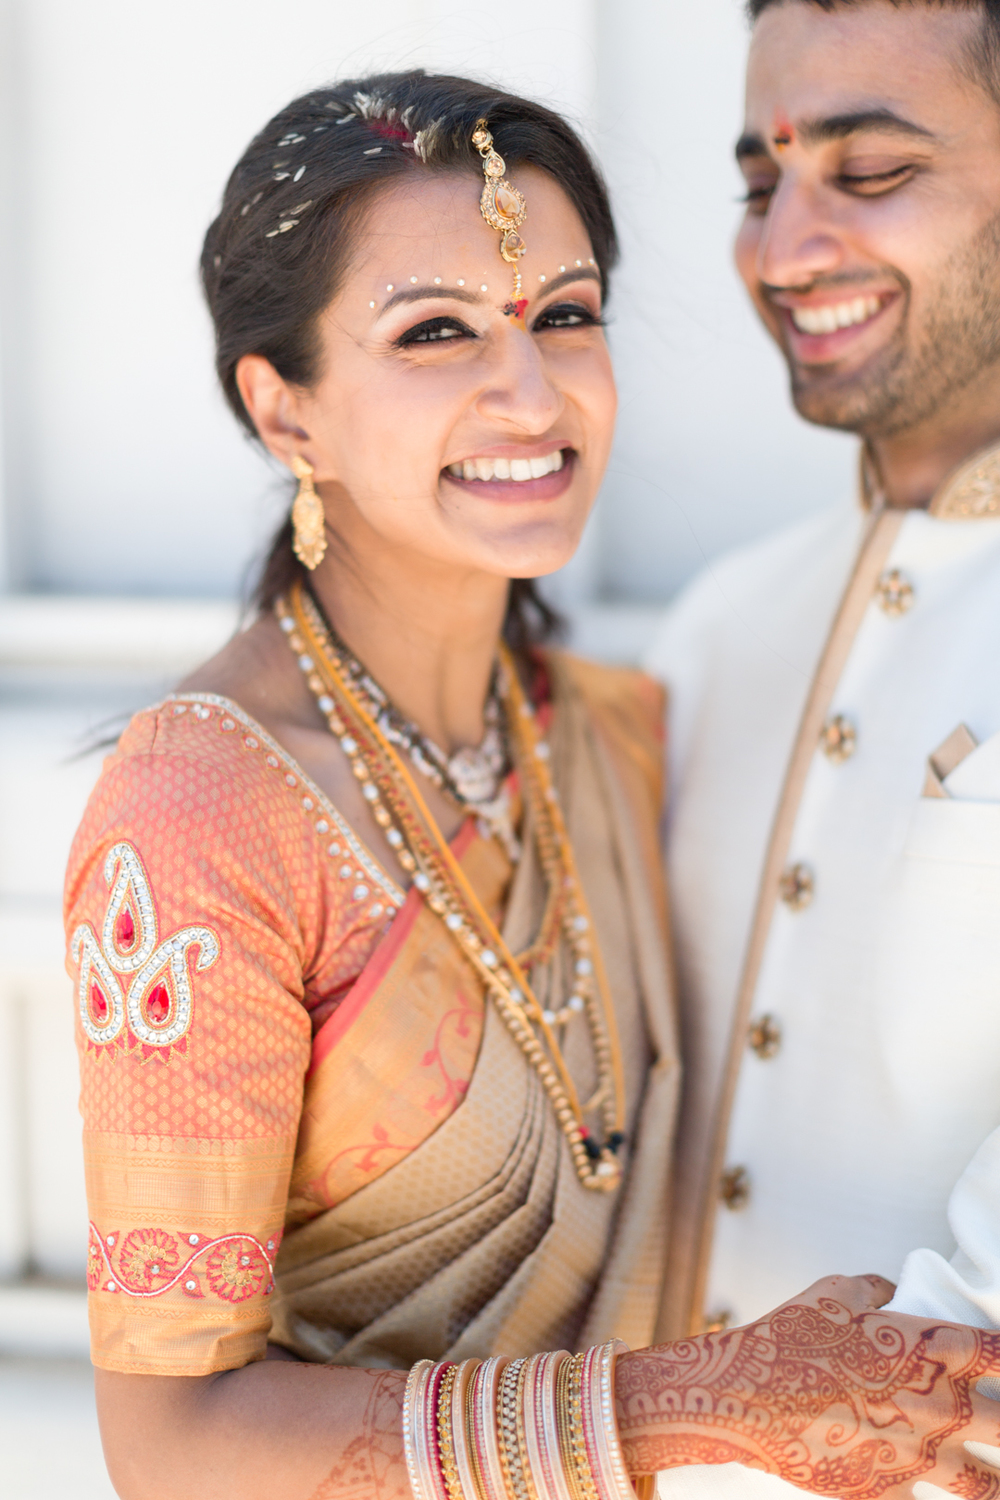 CourtneyPaige_WeddingPhotography_Nagjee-91.jpg